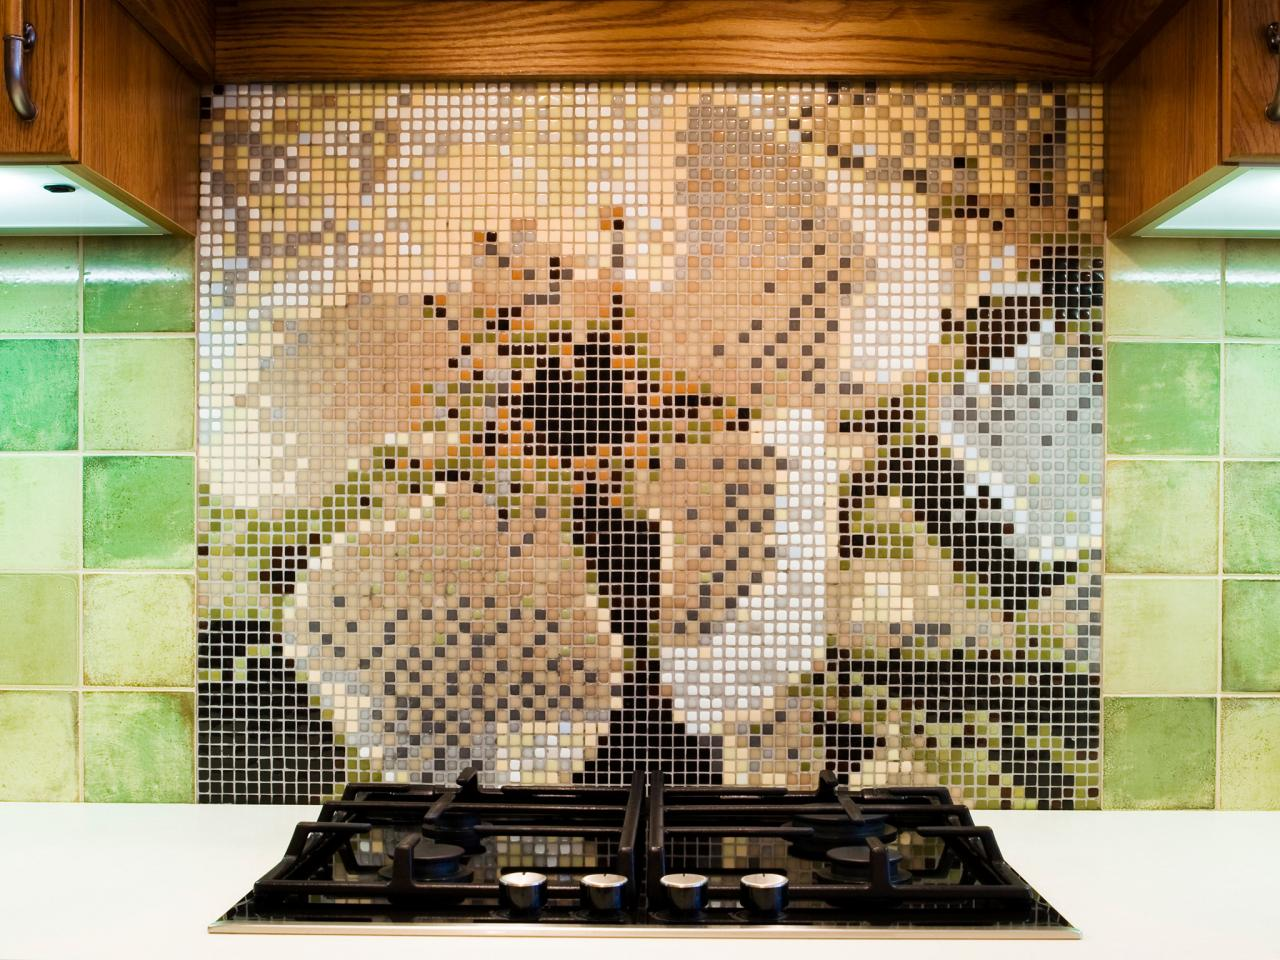 Mosaic Tile Backsplash - Mosaic Tile Backsplash HGTV